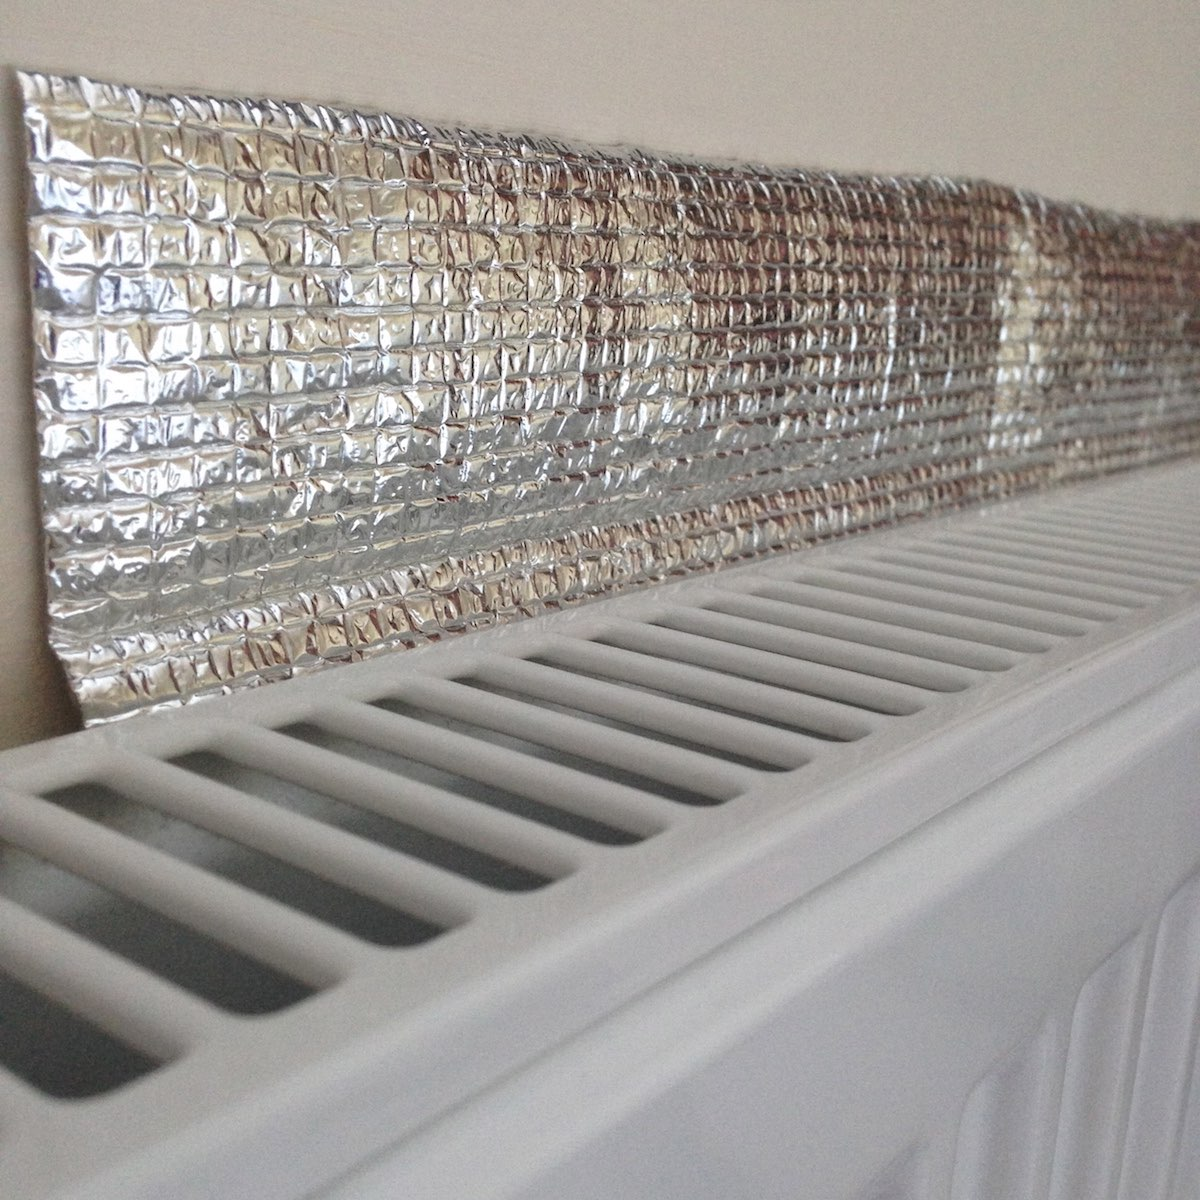 radiator foil in home